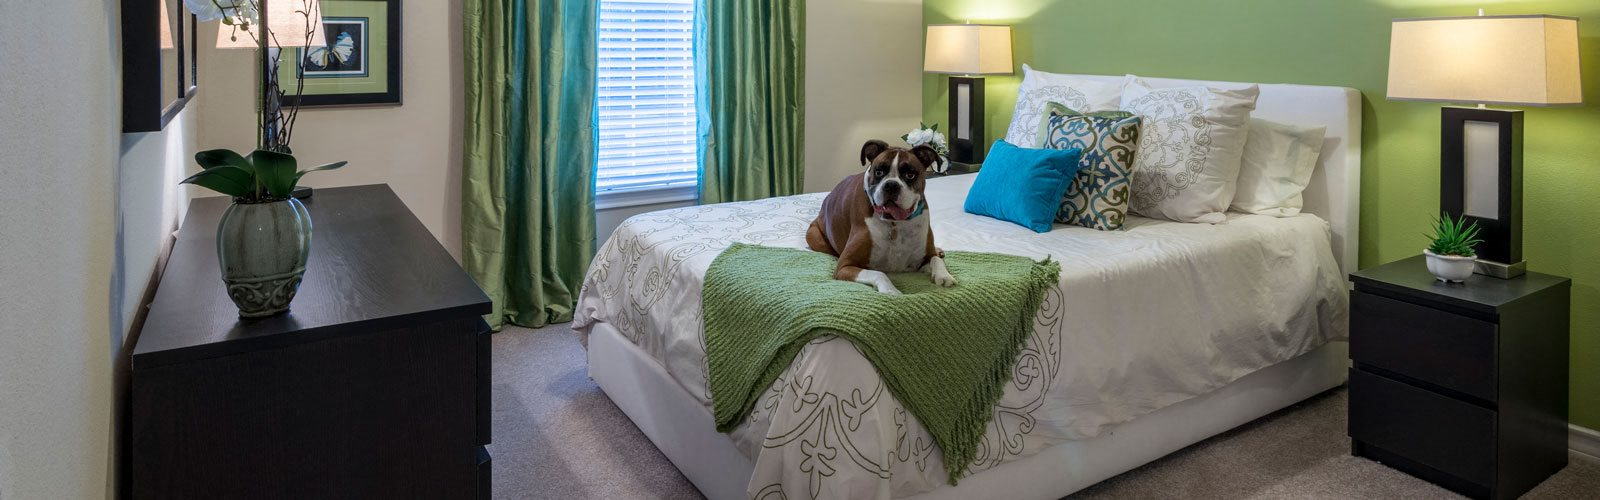 Gorgeous Bedroom With Dog at Wyndchase at Aspen Grove, Franklin, Tennessee